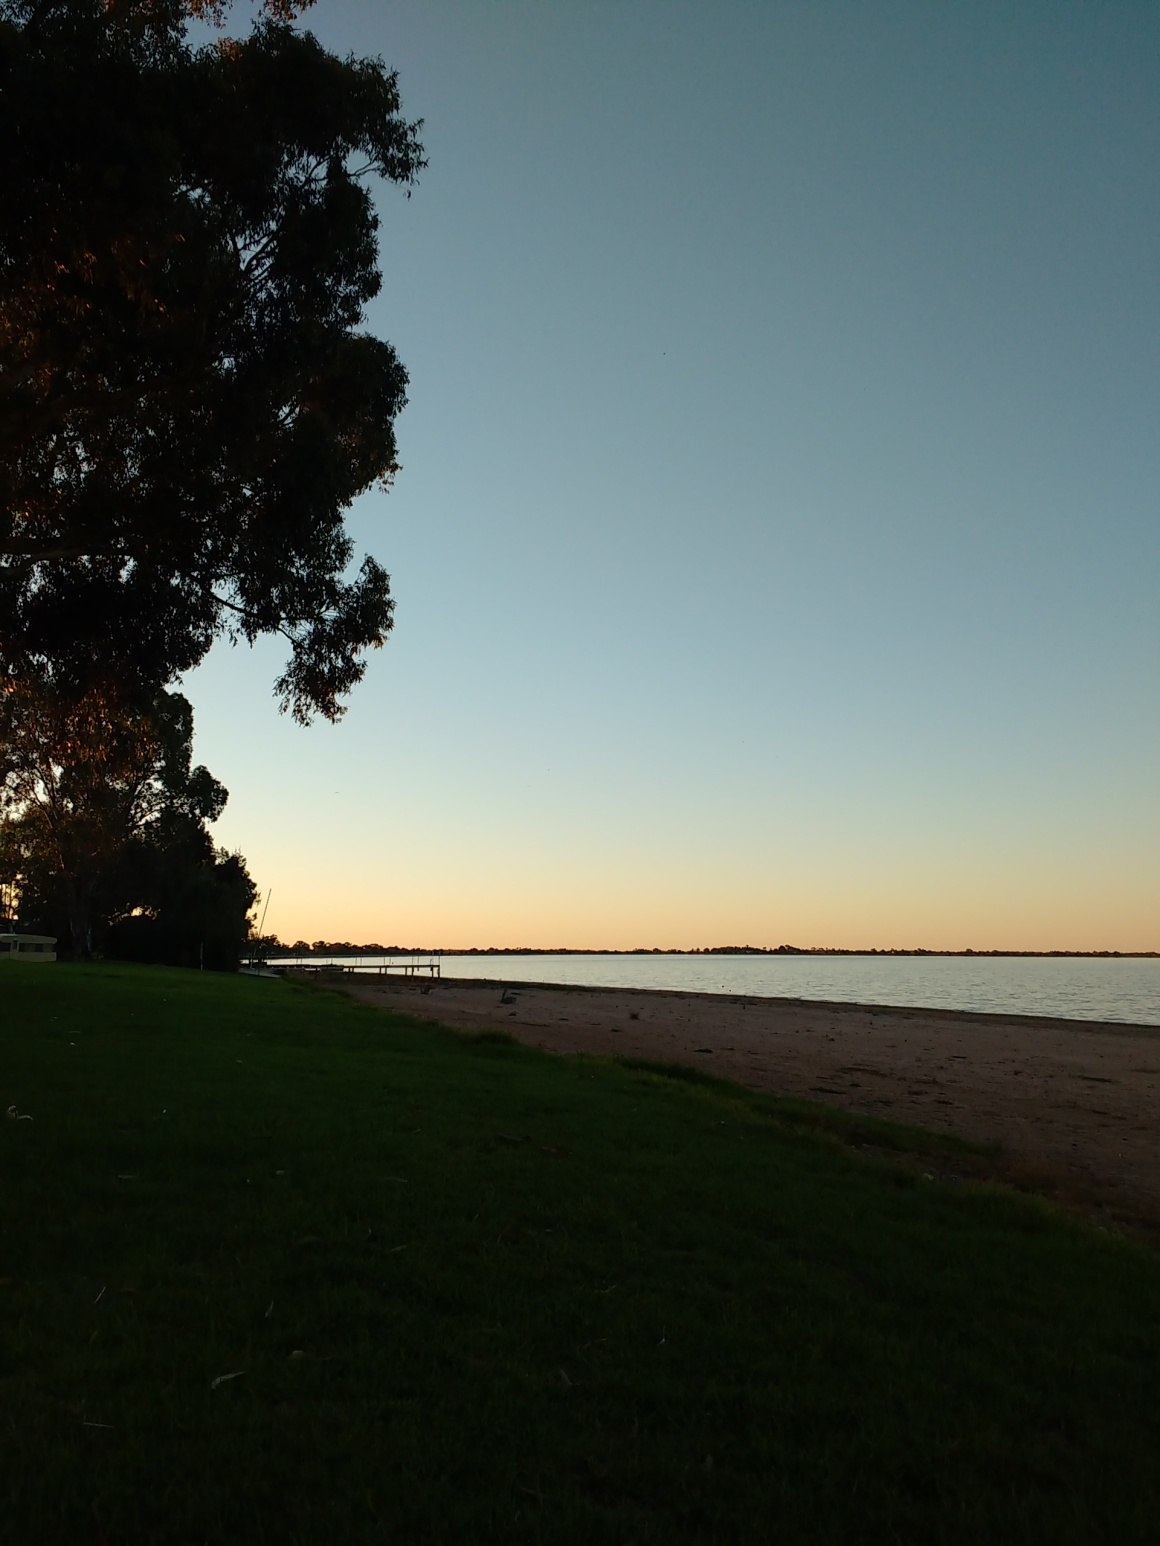 Lake Boga at sunset